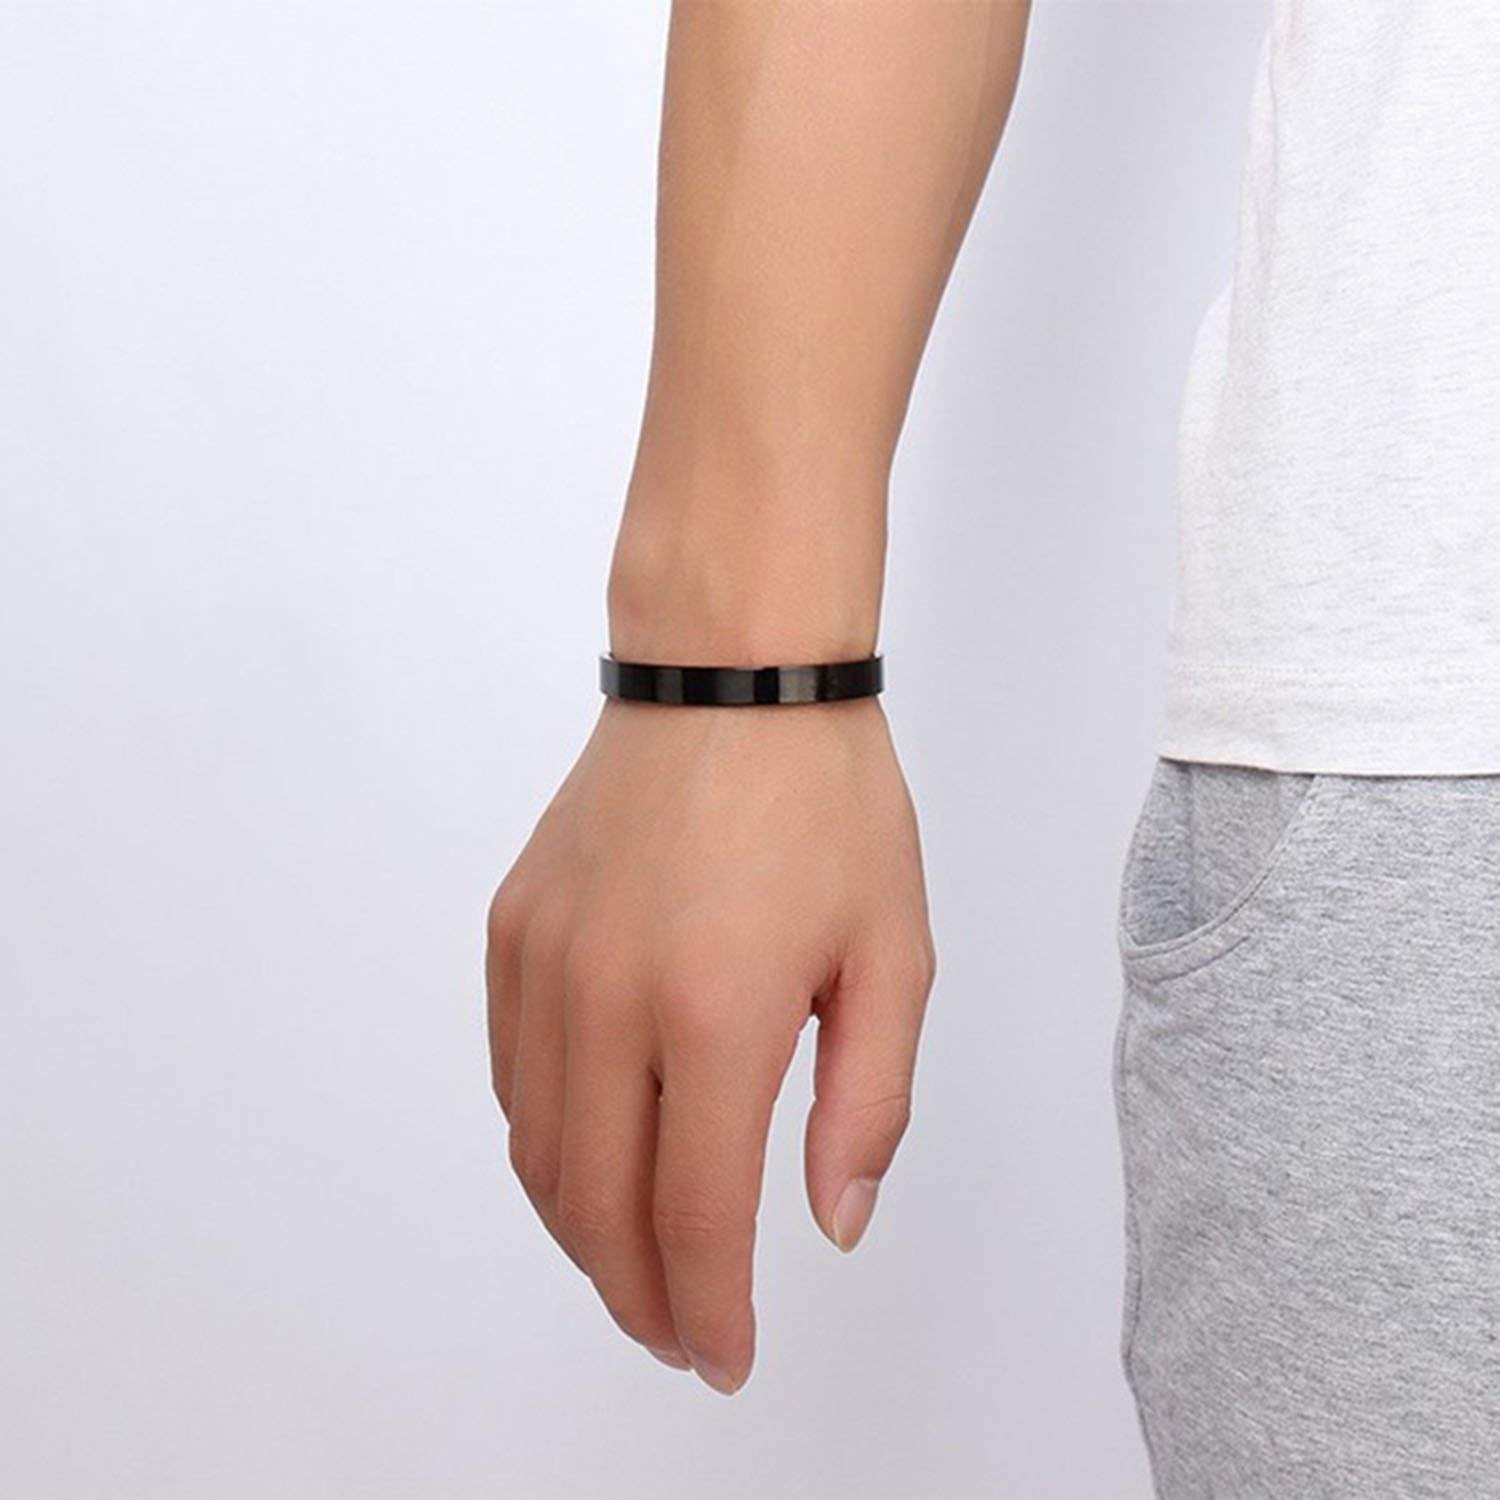 Dayday-Summer Couple Bangle Brief Design Stainless Steel Cuff Bang for Women and Men Gold Silver Black Color Alliance Bracelet